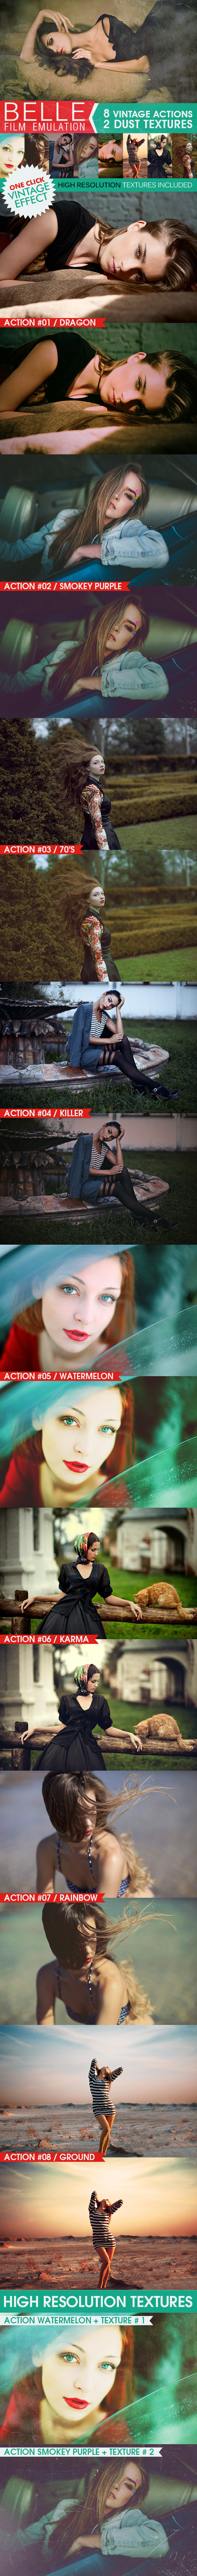 HQ Film Emulation Actions V - Photo Effects Actions